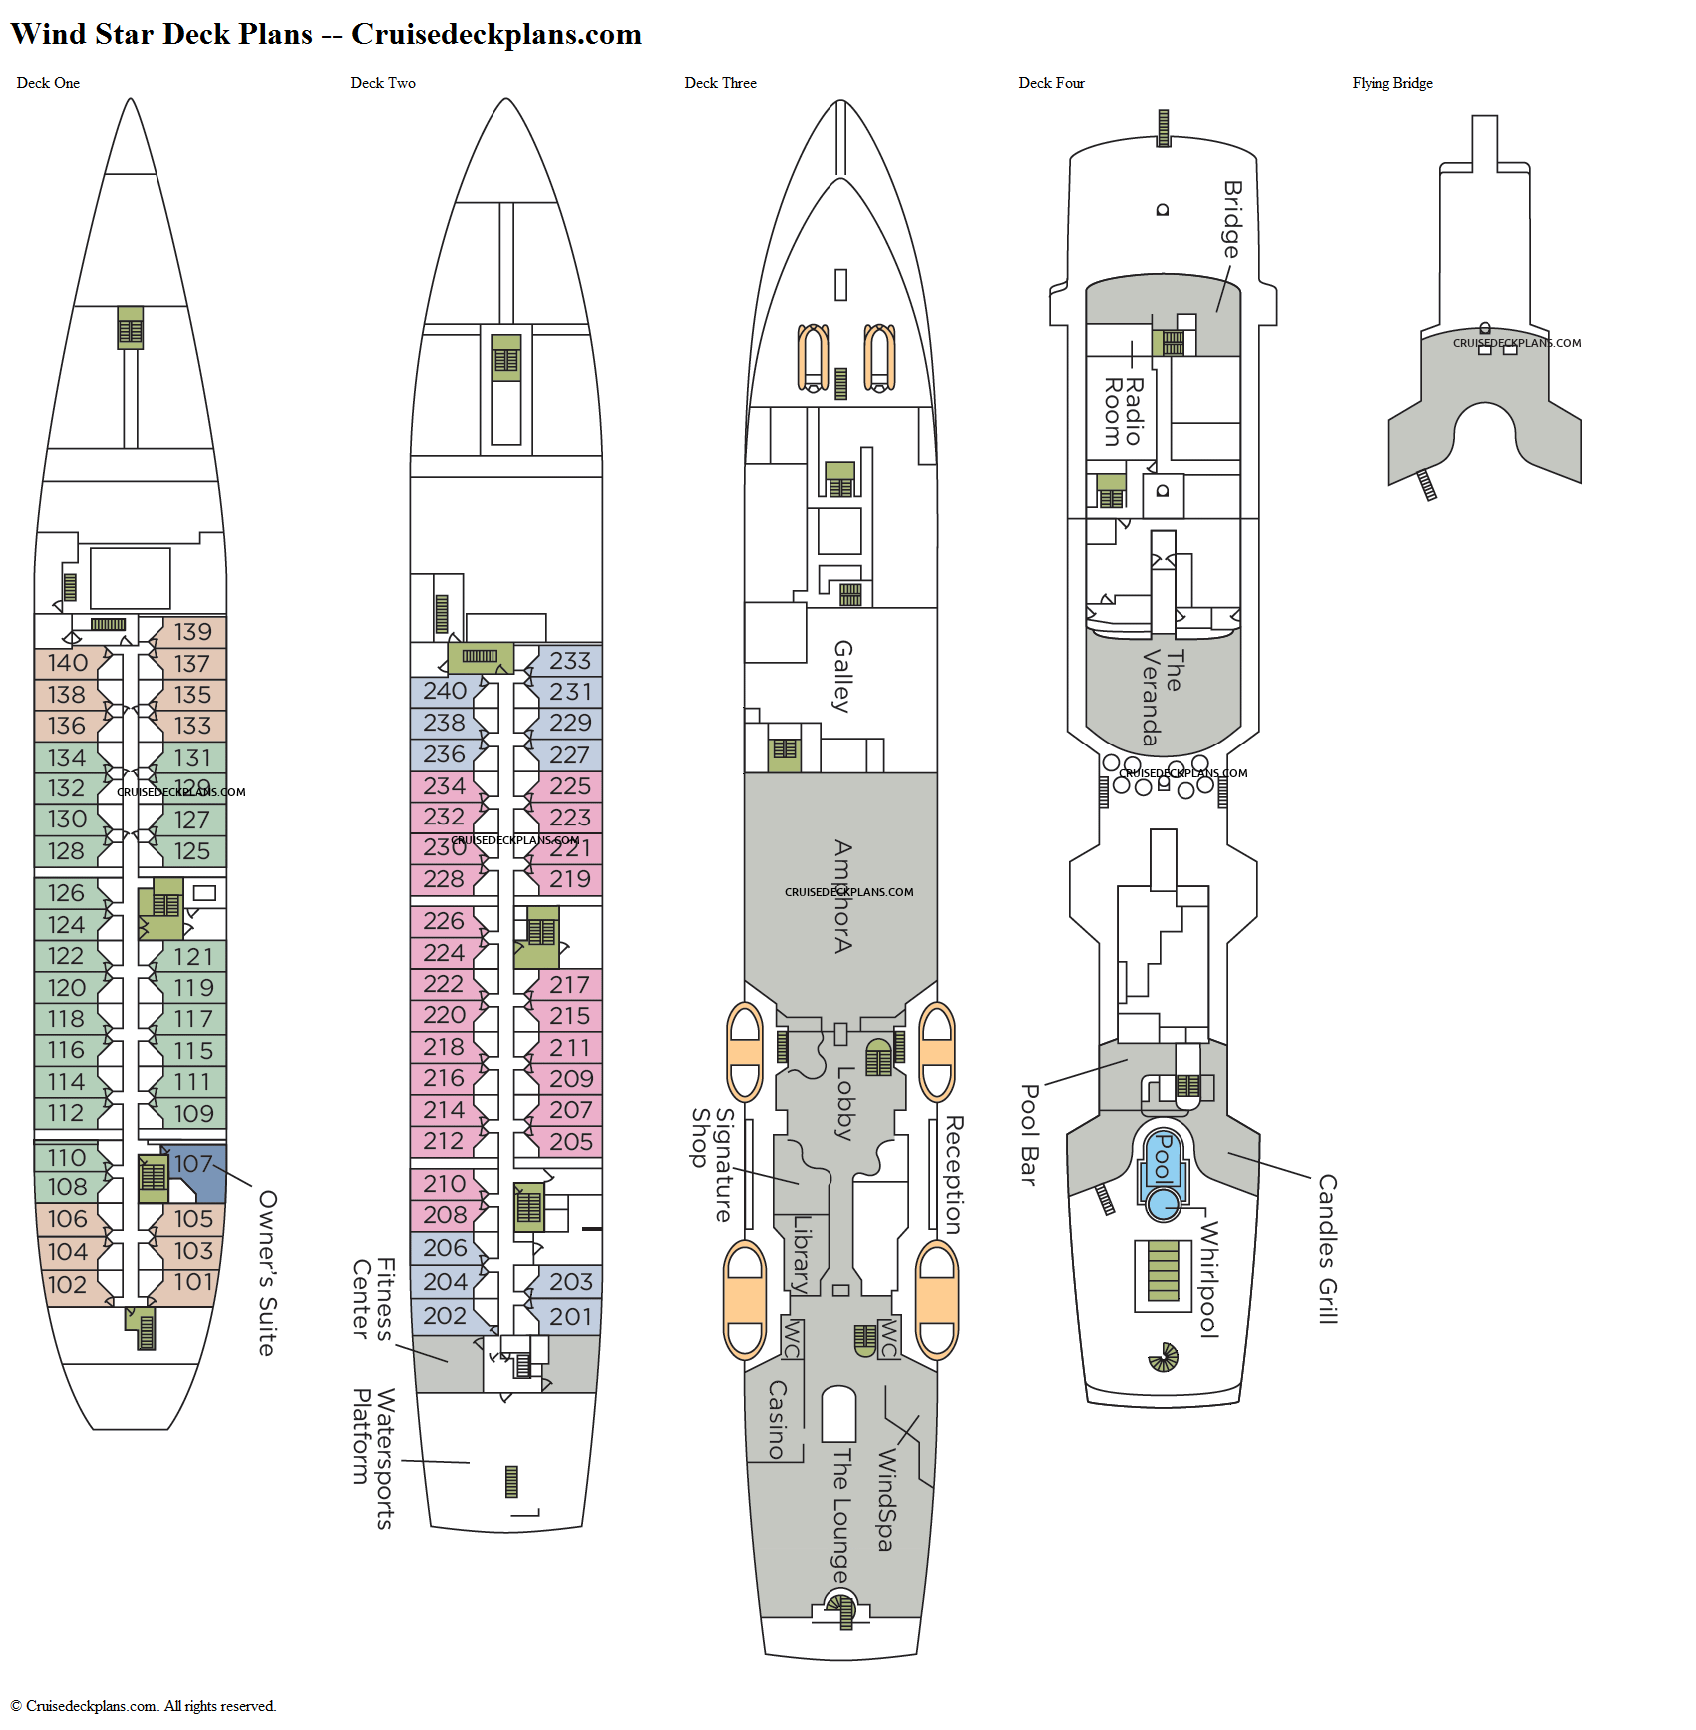 Wind Star deck plans image